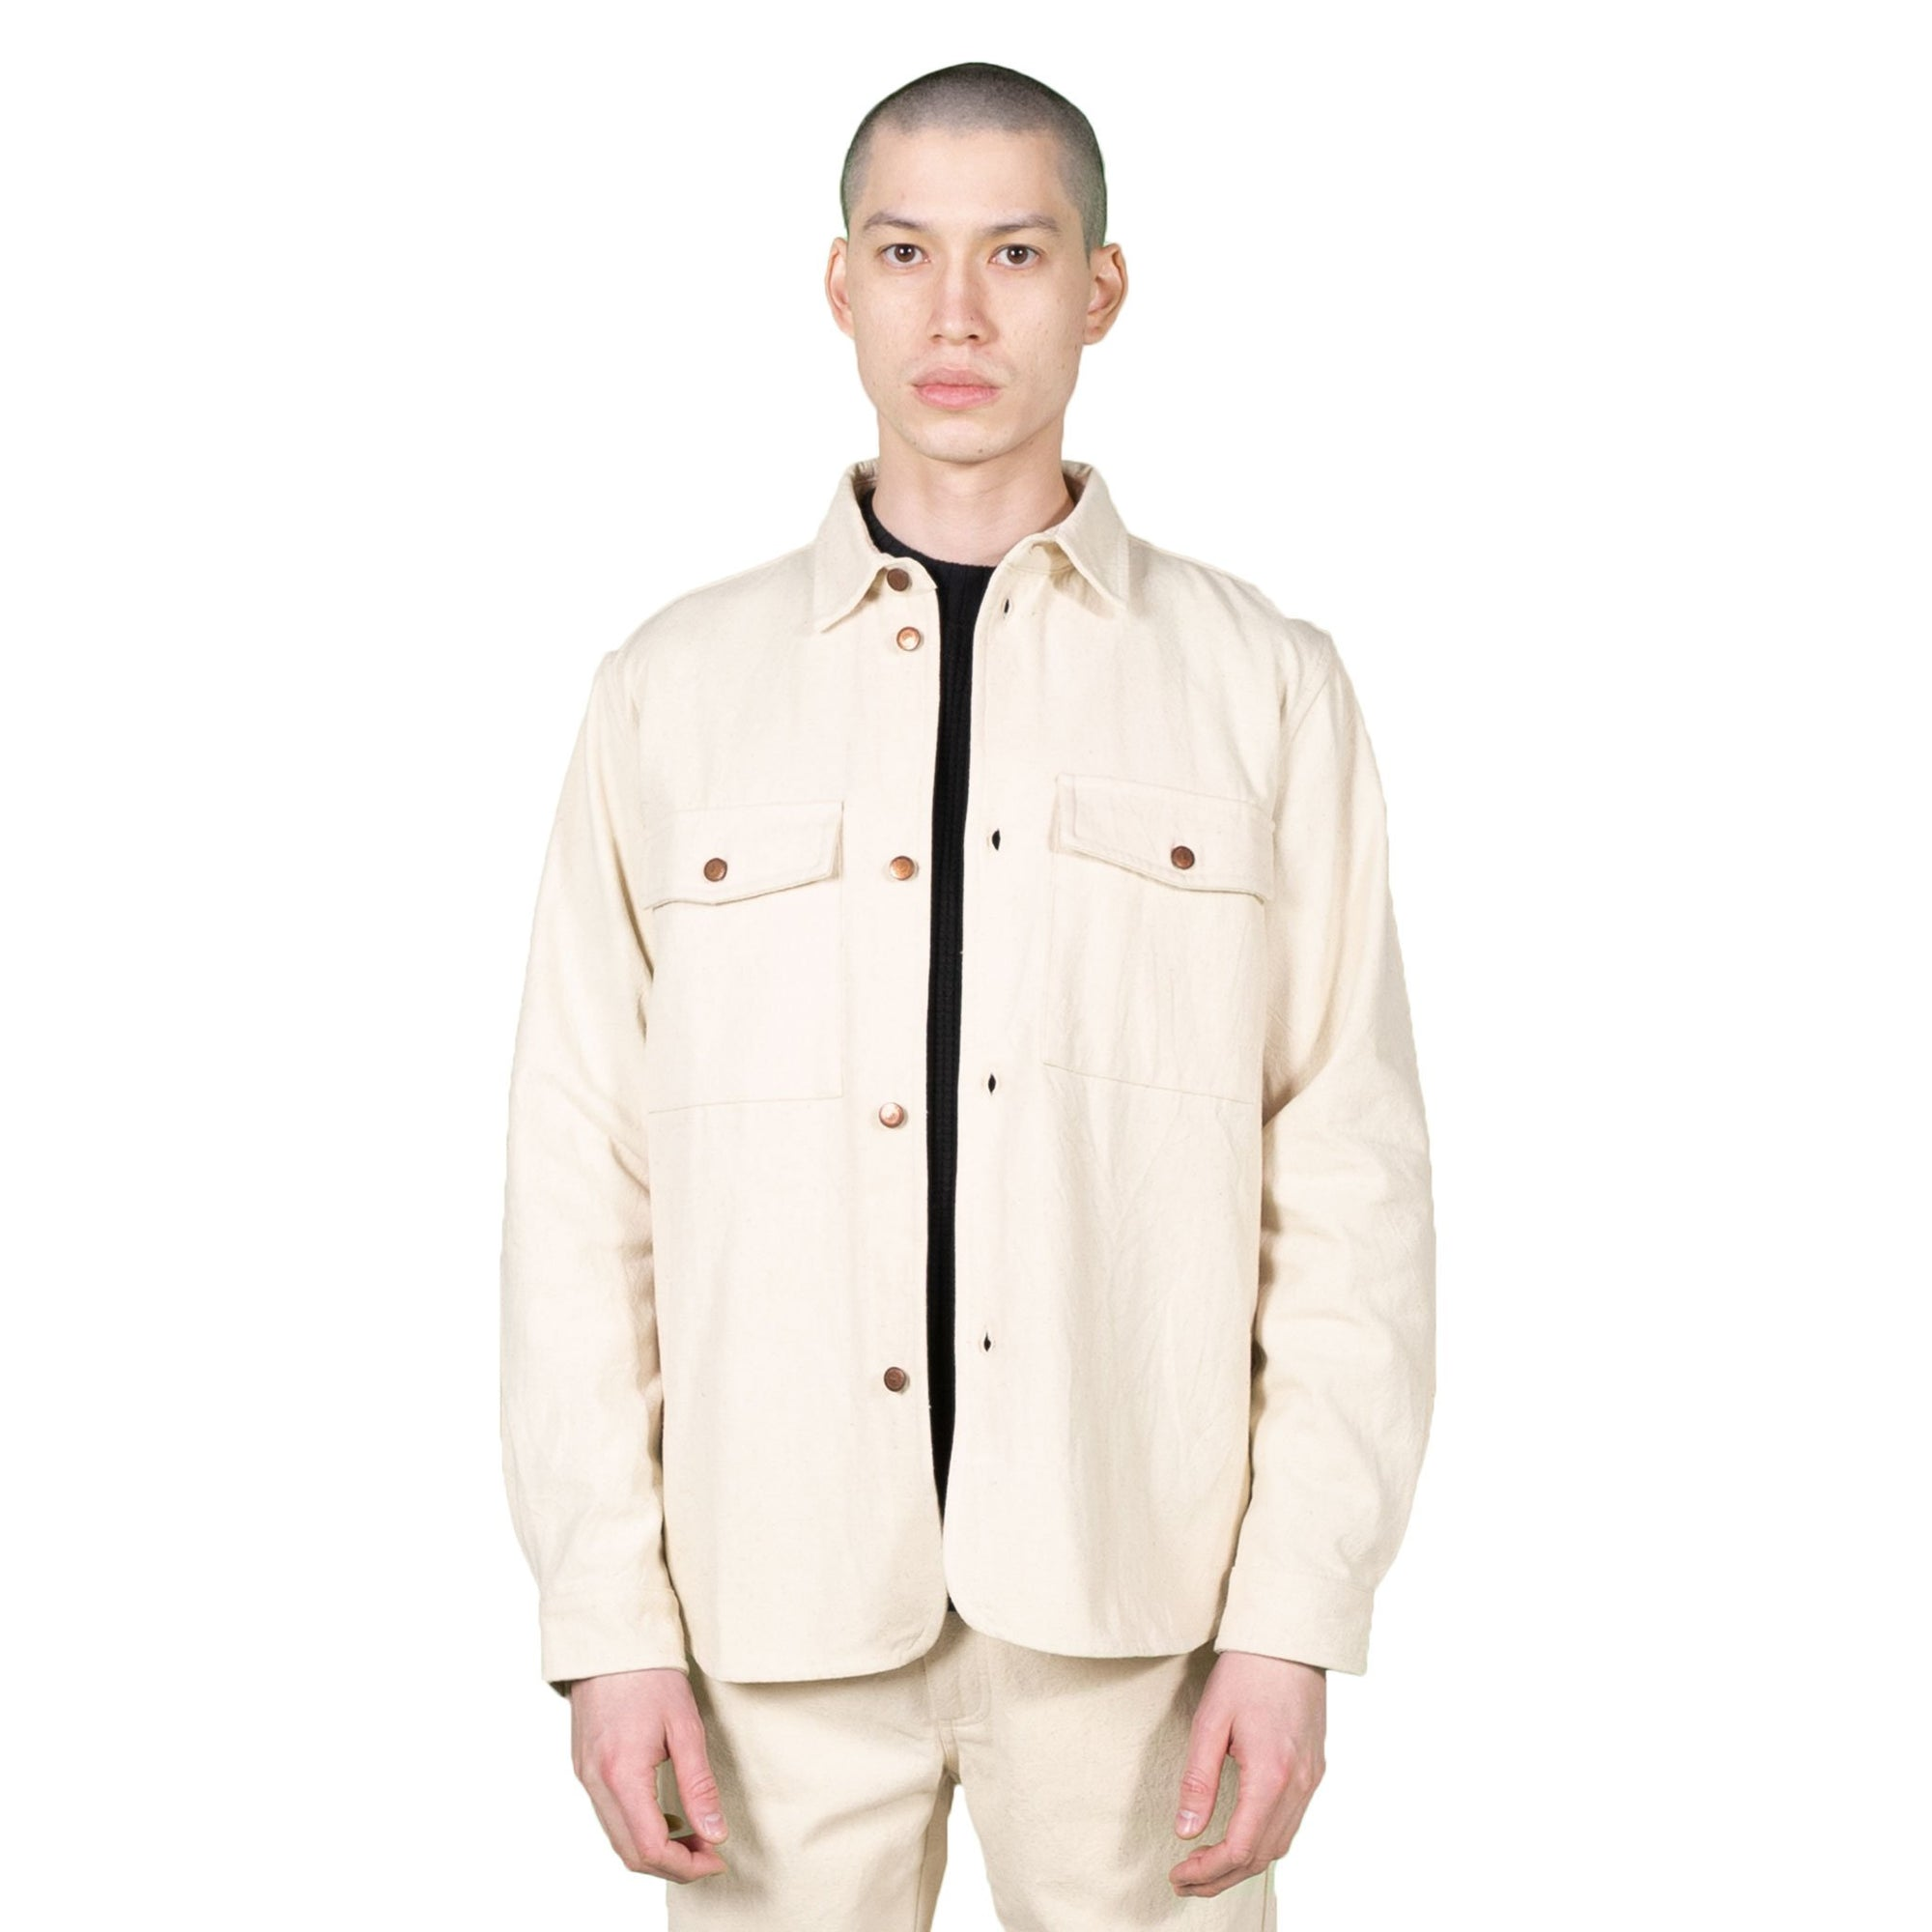 Native North Salt and Pepper Overshirt in Sand